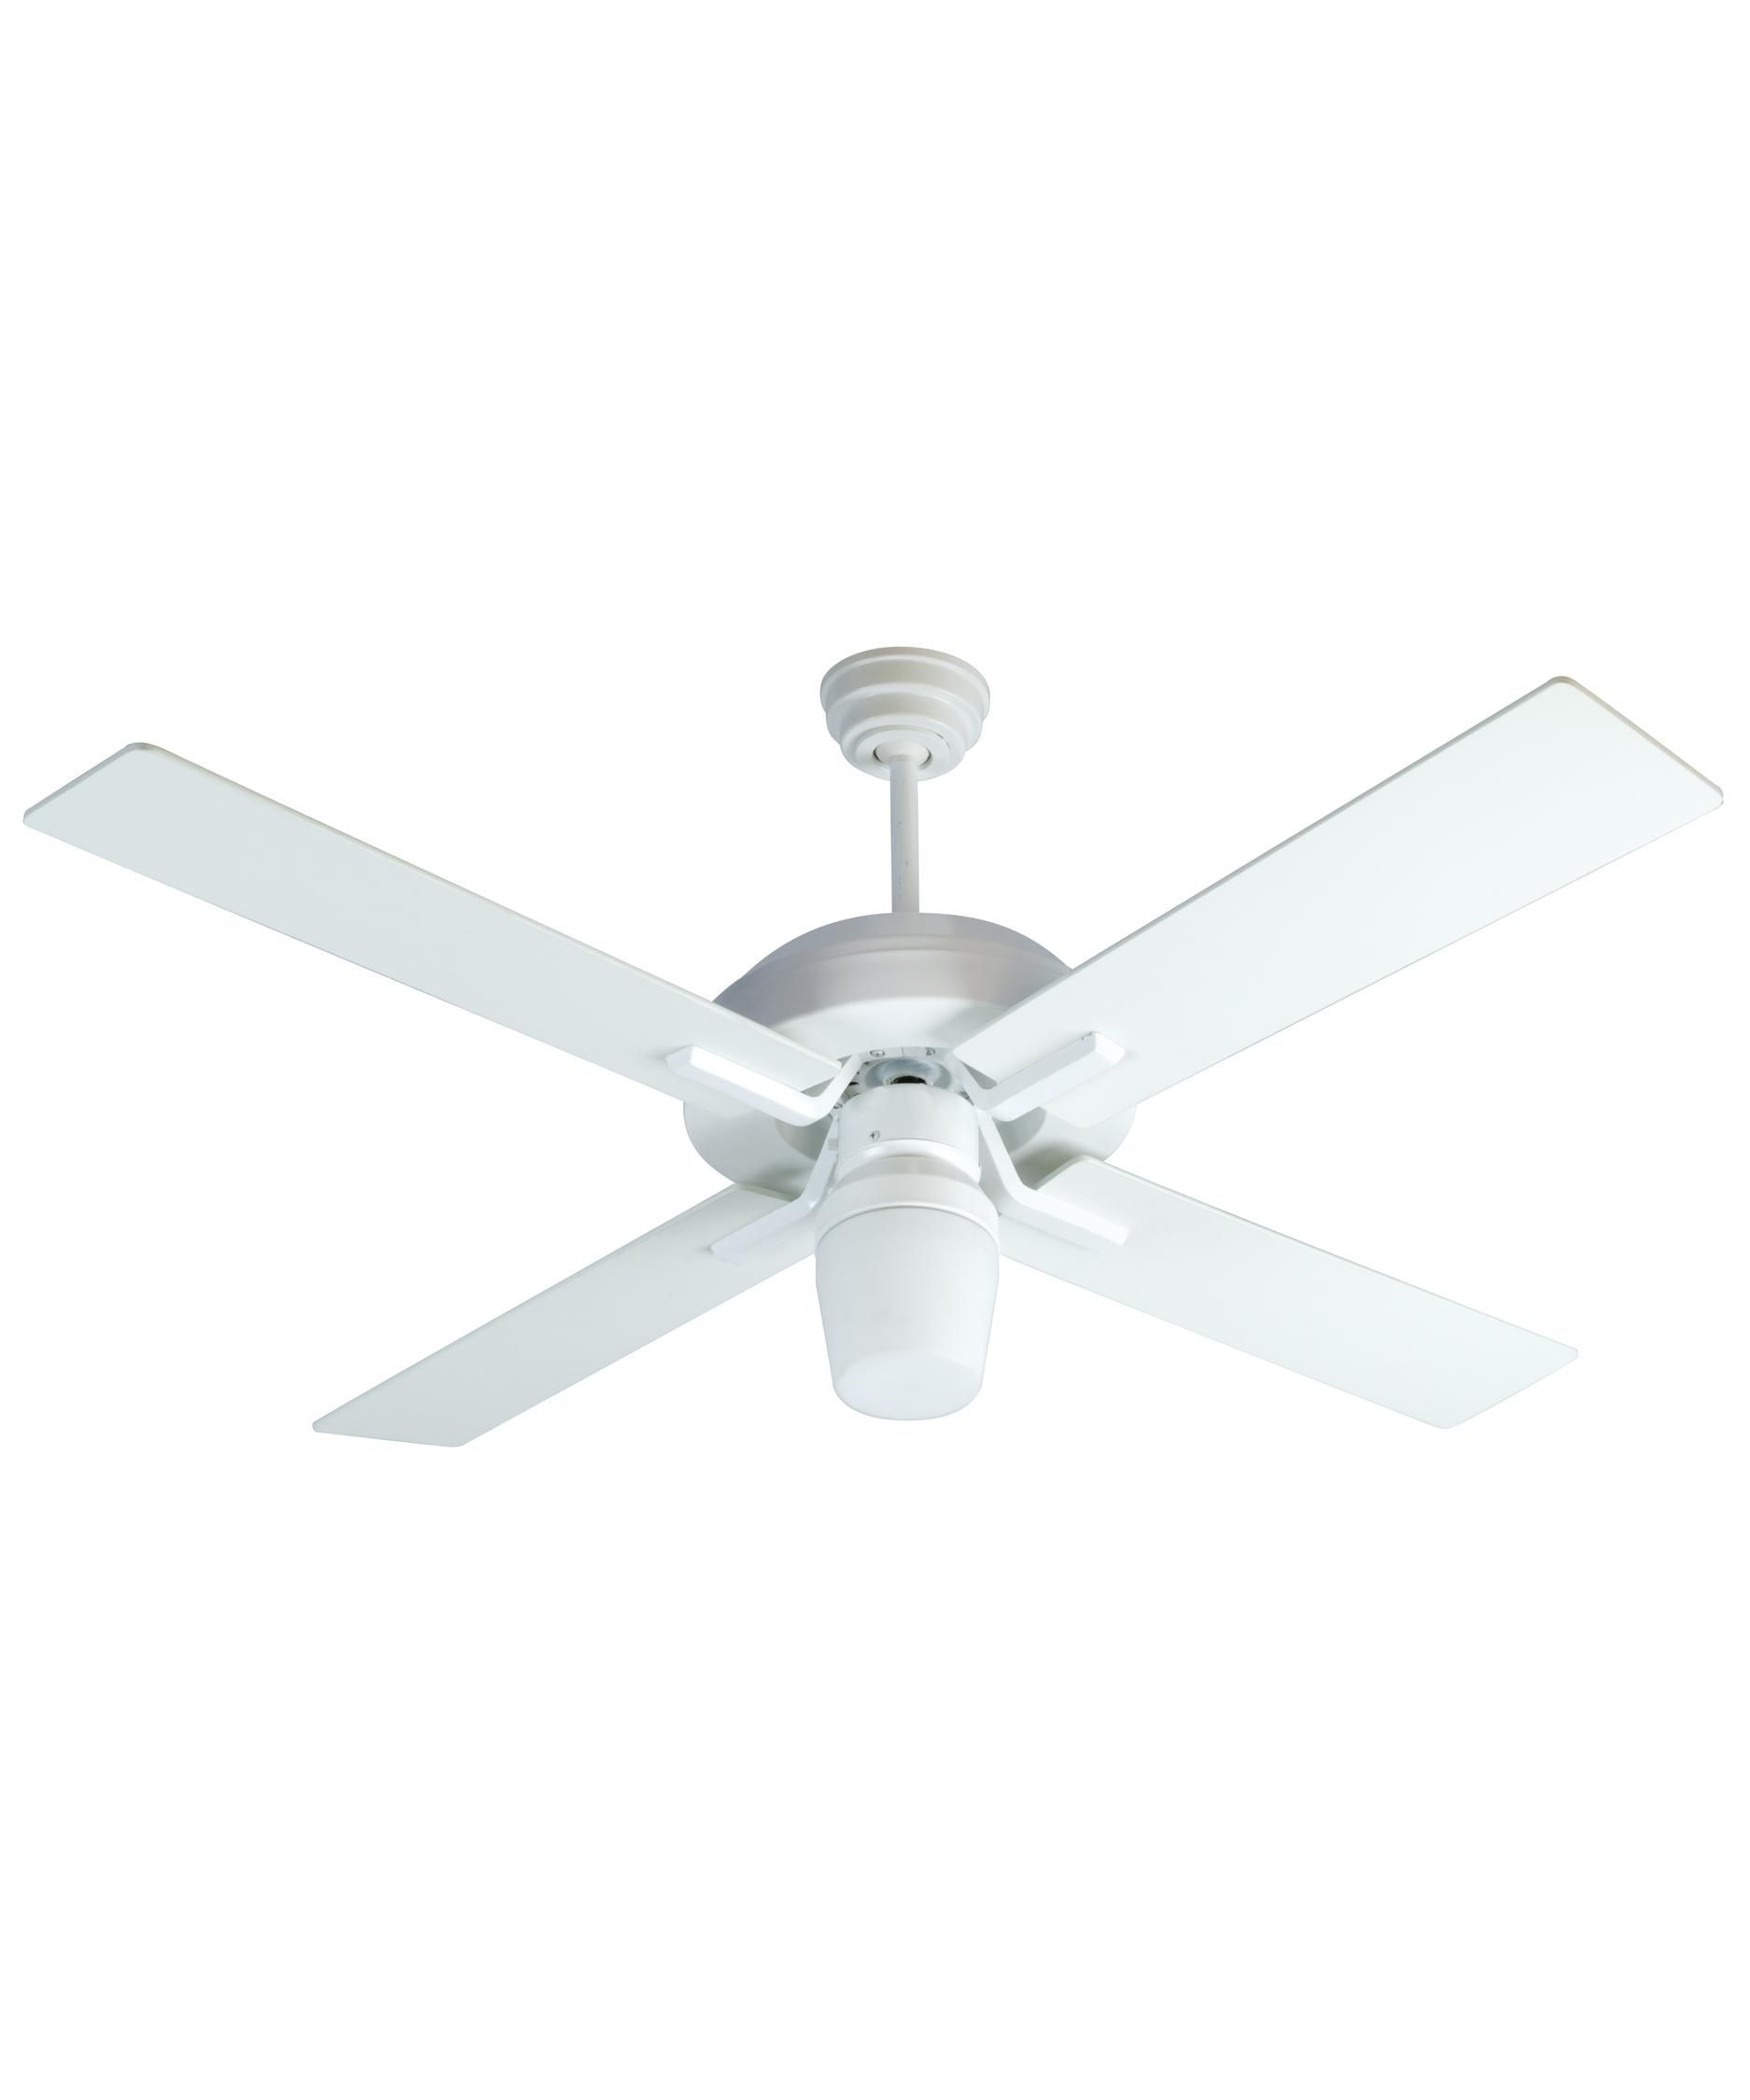 Craftmade SB52 South Beach 52 Inch Ceiling Fan With Light Kit